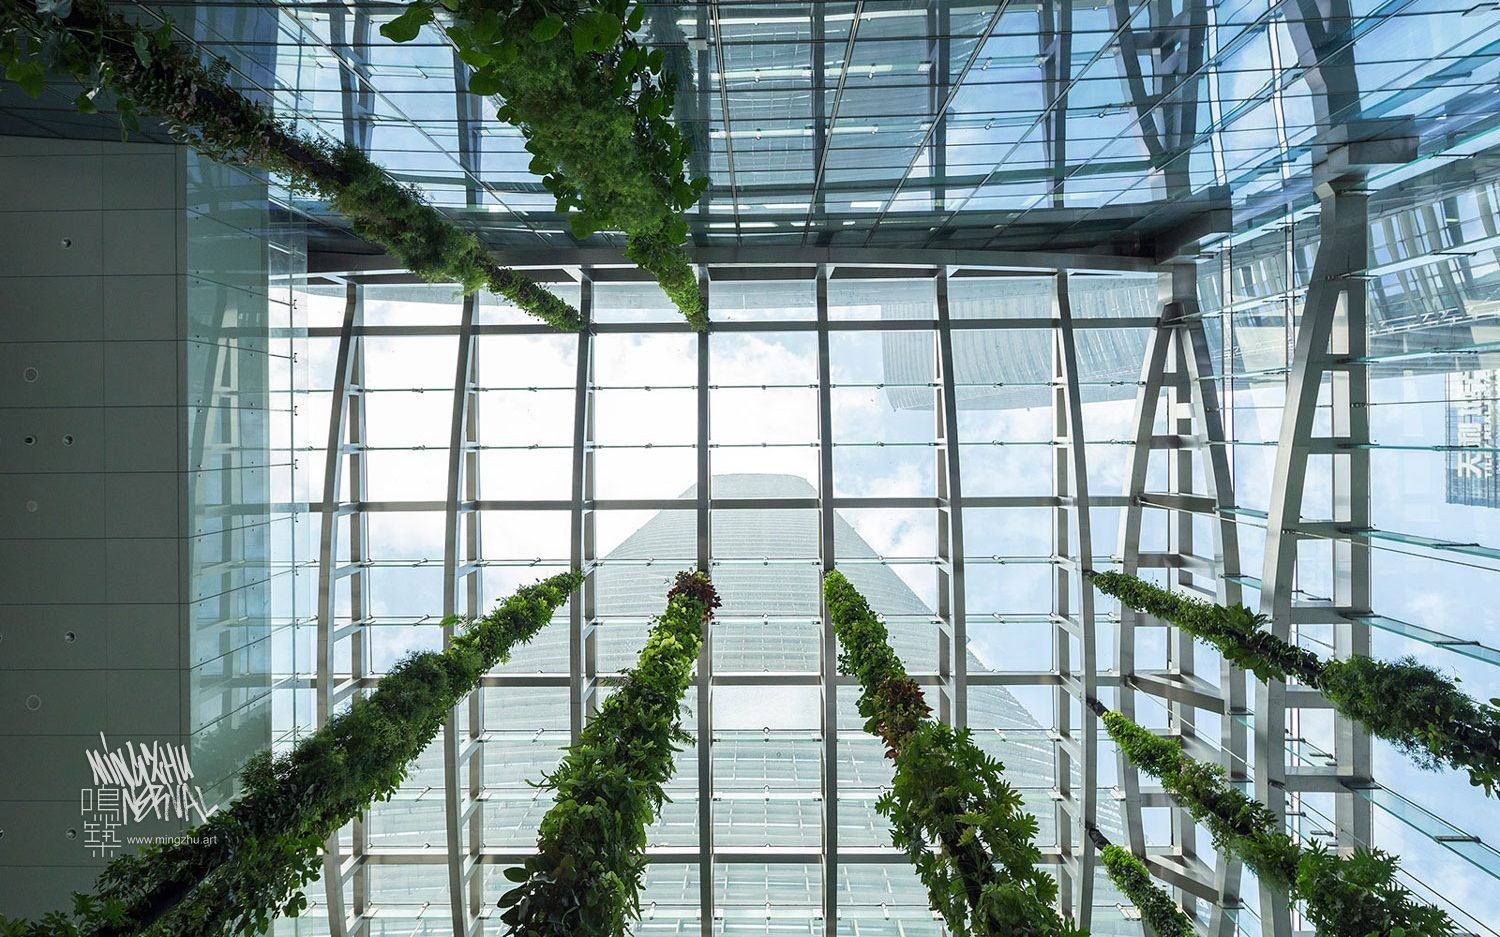 At Mingzhu Nerval, we thrive at creating the most beautiful vertical gardens in the world. For the SCC Tower, we created an impressive living wall design - Shenzhen, 2016.